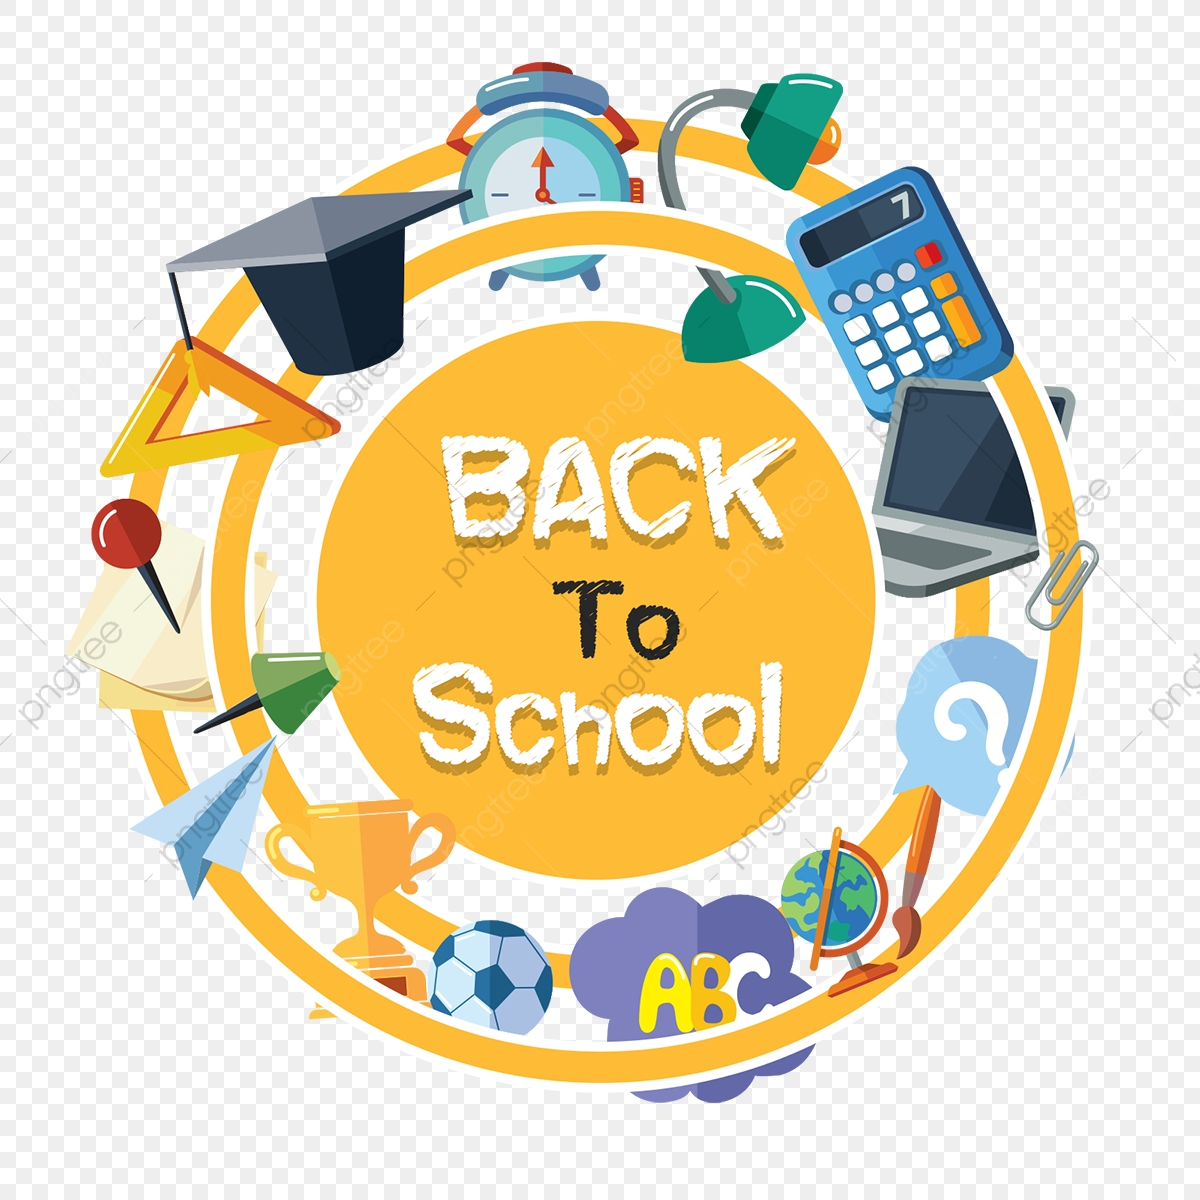 Back To School Elements, School, Back To School PNG Transparent.